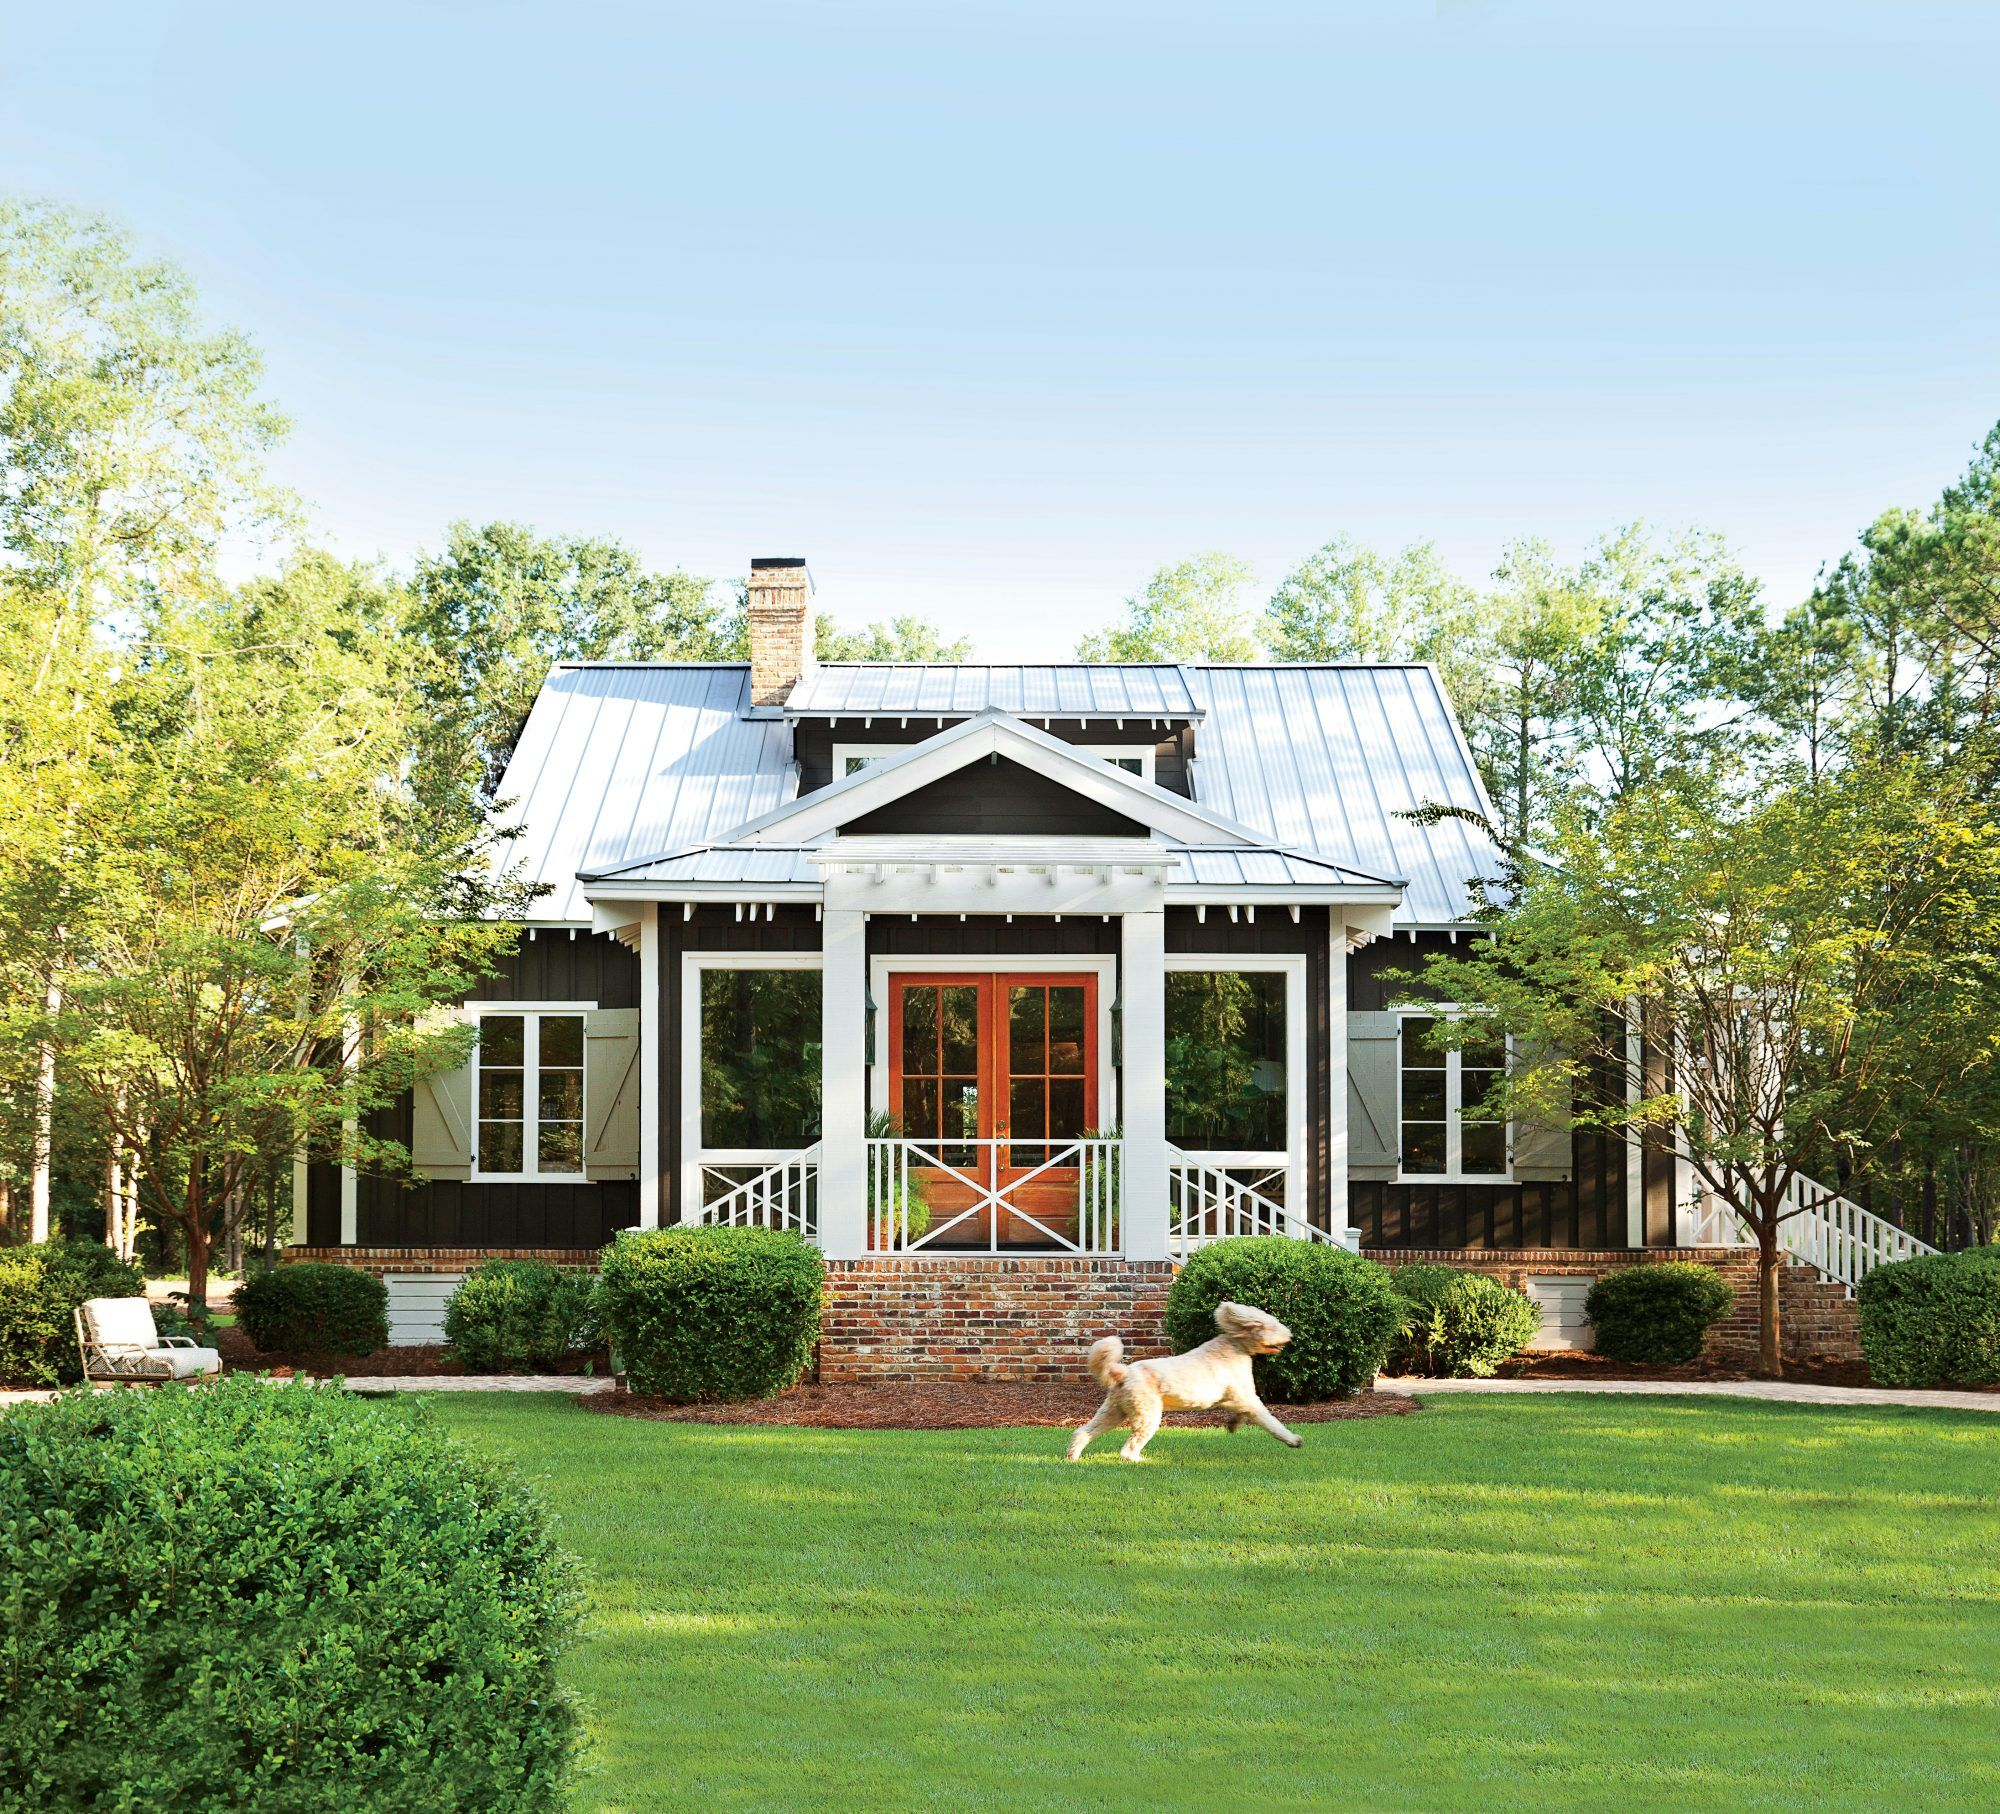 Why We Love Southern Living House Plan Number 1870 In 2020 Southern Living House Plans Southern House Plans Country Farmhouse Decor